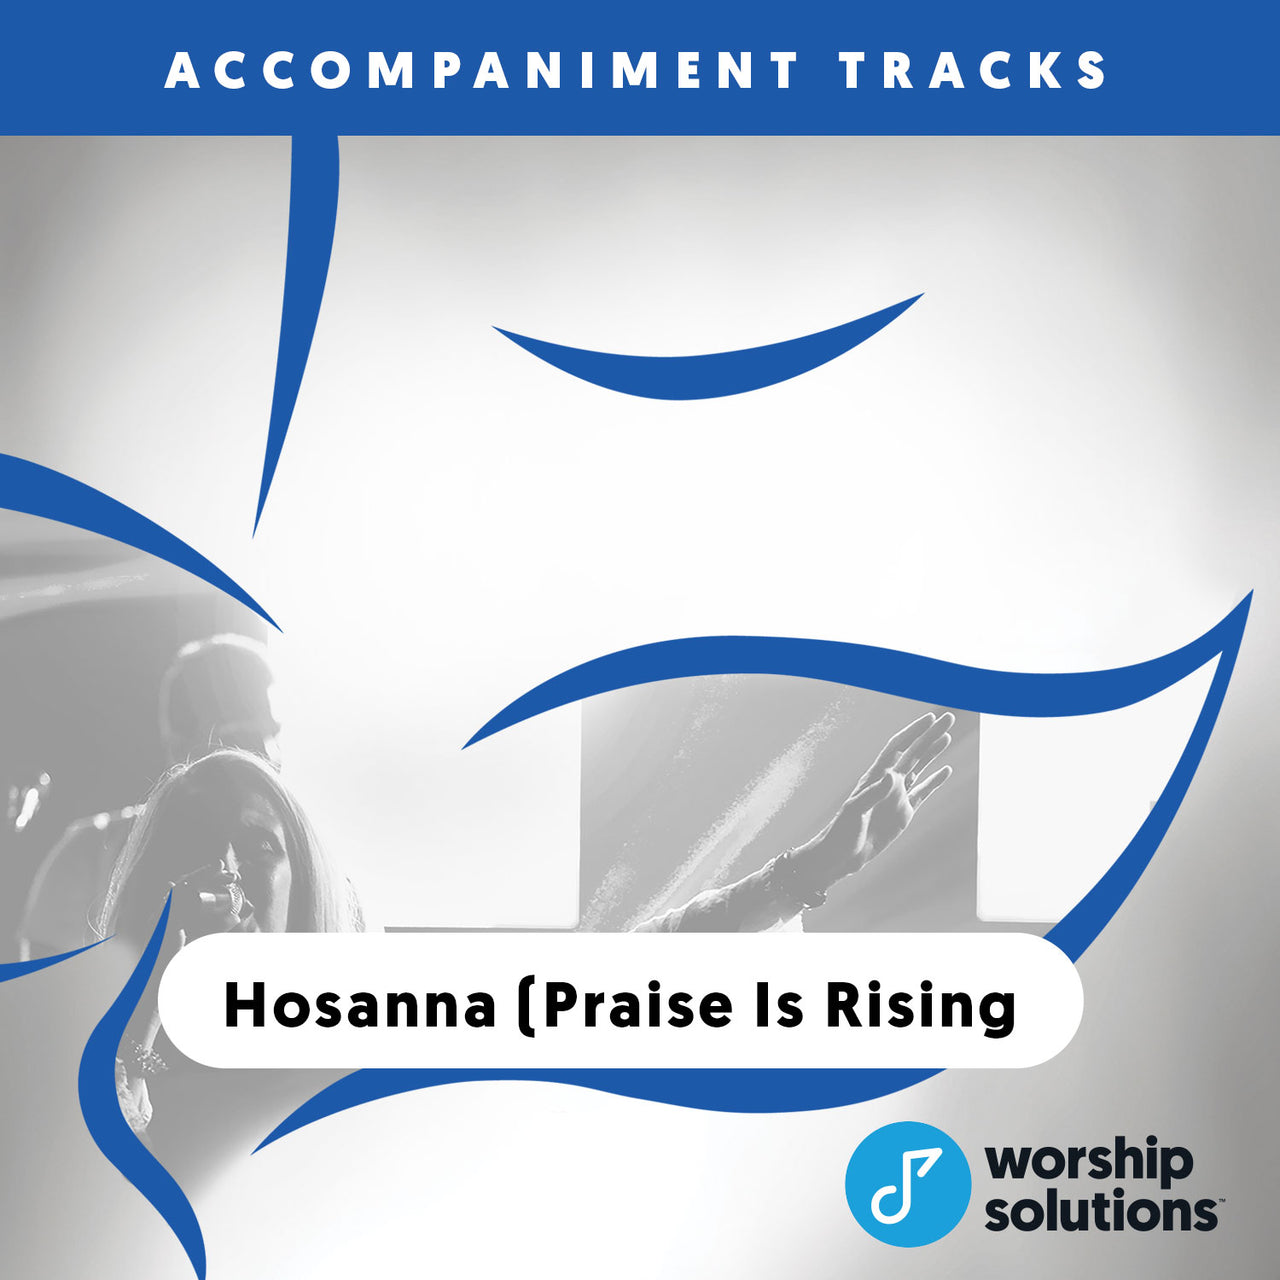 Hosanna (Praise is Rising), Accompaniment Track